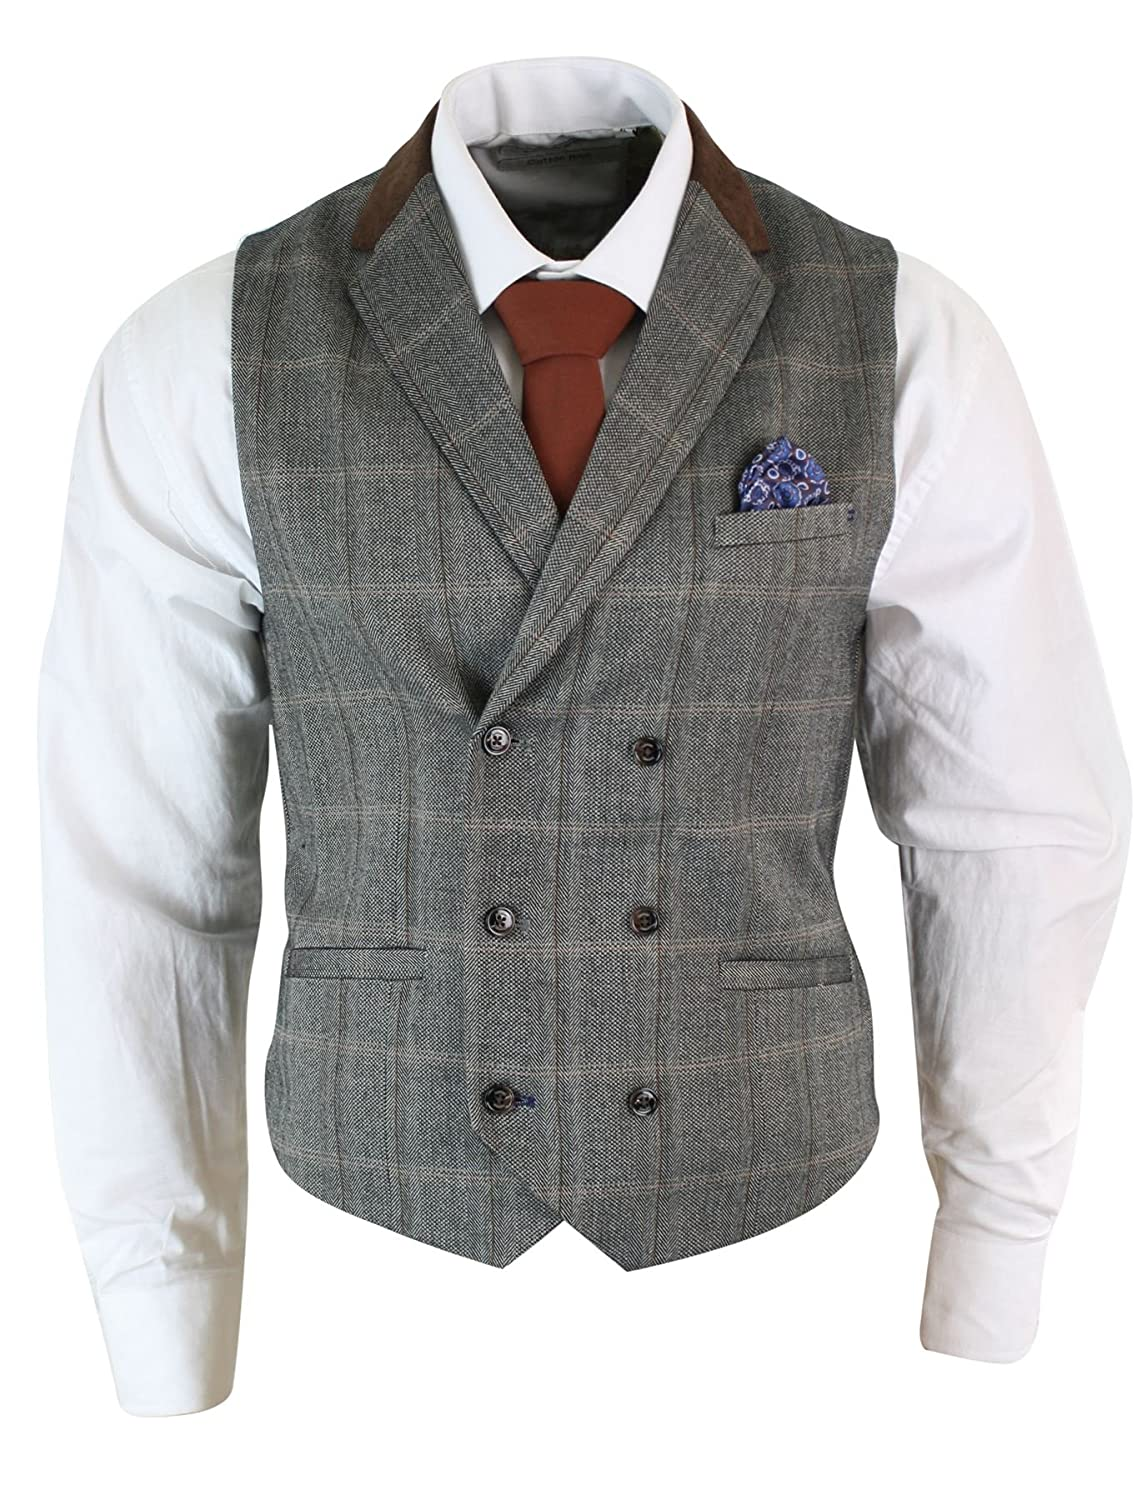 Men's Vintage Vests, Sweater Vests Mens Double Breasted Herringbone Tweed Peaky Blinders Vintage Check Waistcoat £34.99 AT vintagedancer.com